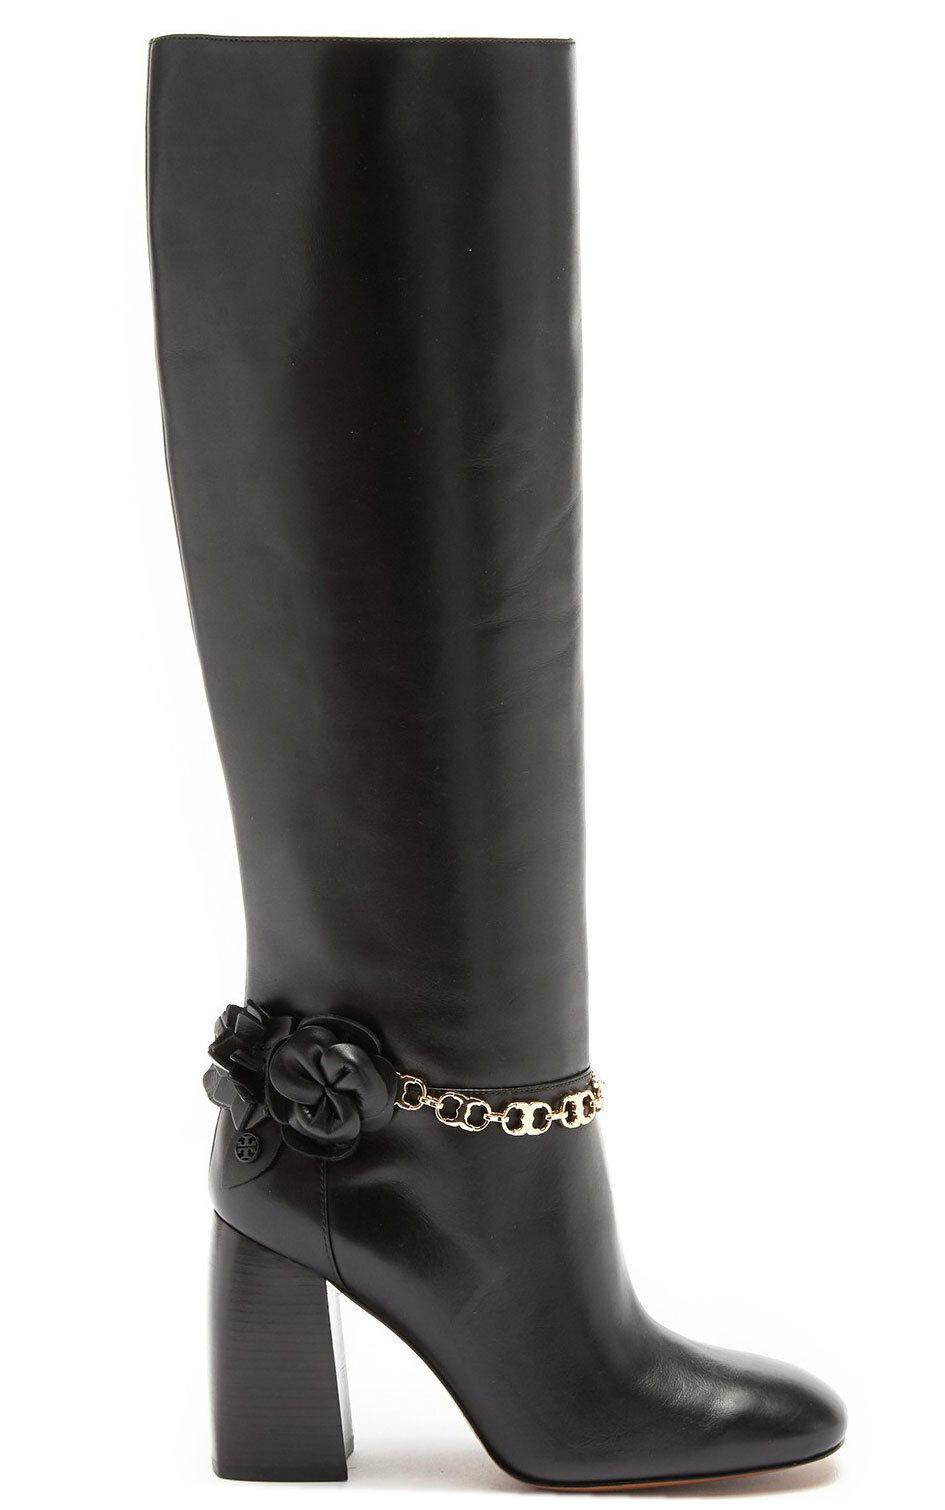 $550 Tory Burch Black Blossom Block Heel Boots Tall Knee High Shoes 10